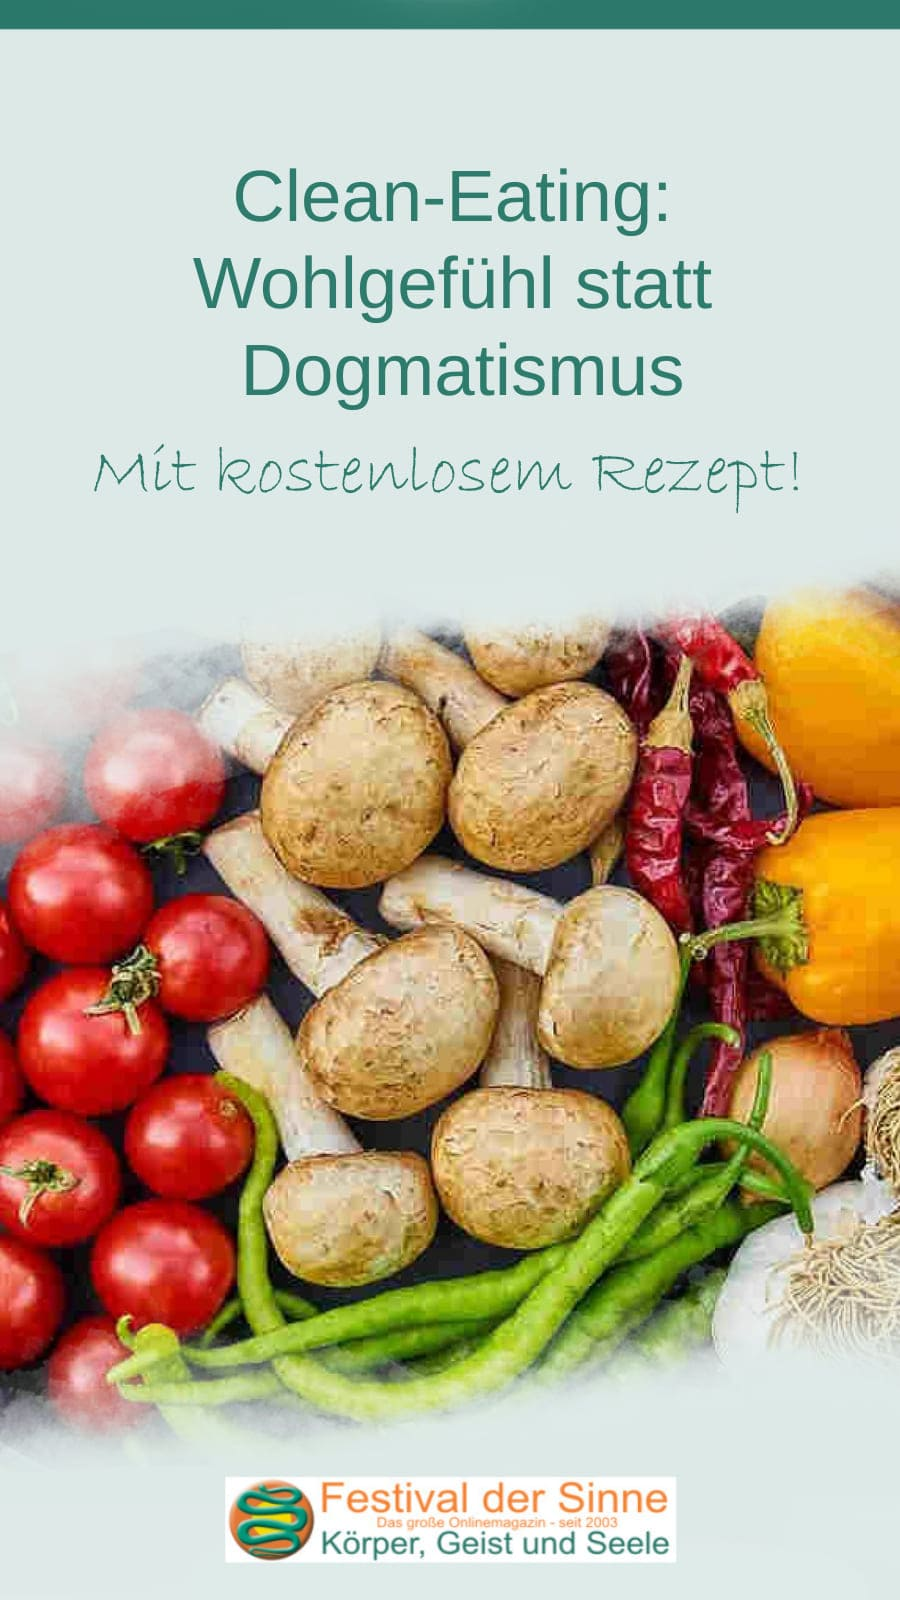 #Cleaneating #Rezept - Wohlgefühl statt Dogmatismus (Pin)